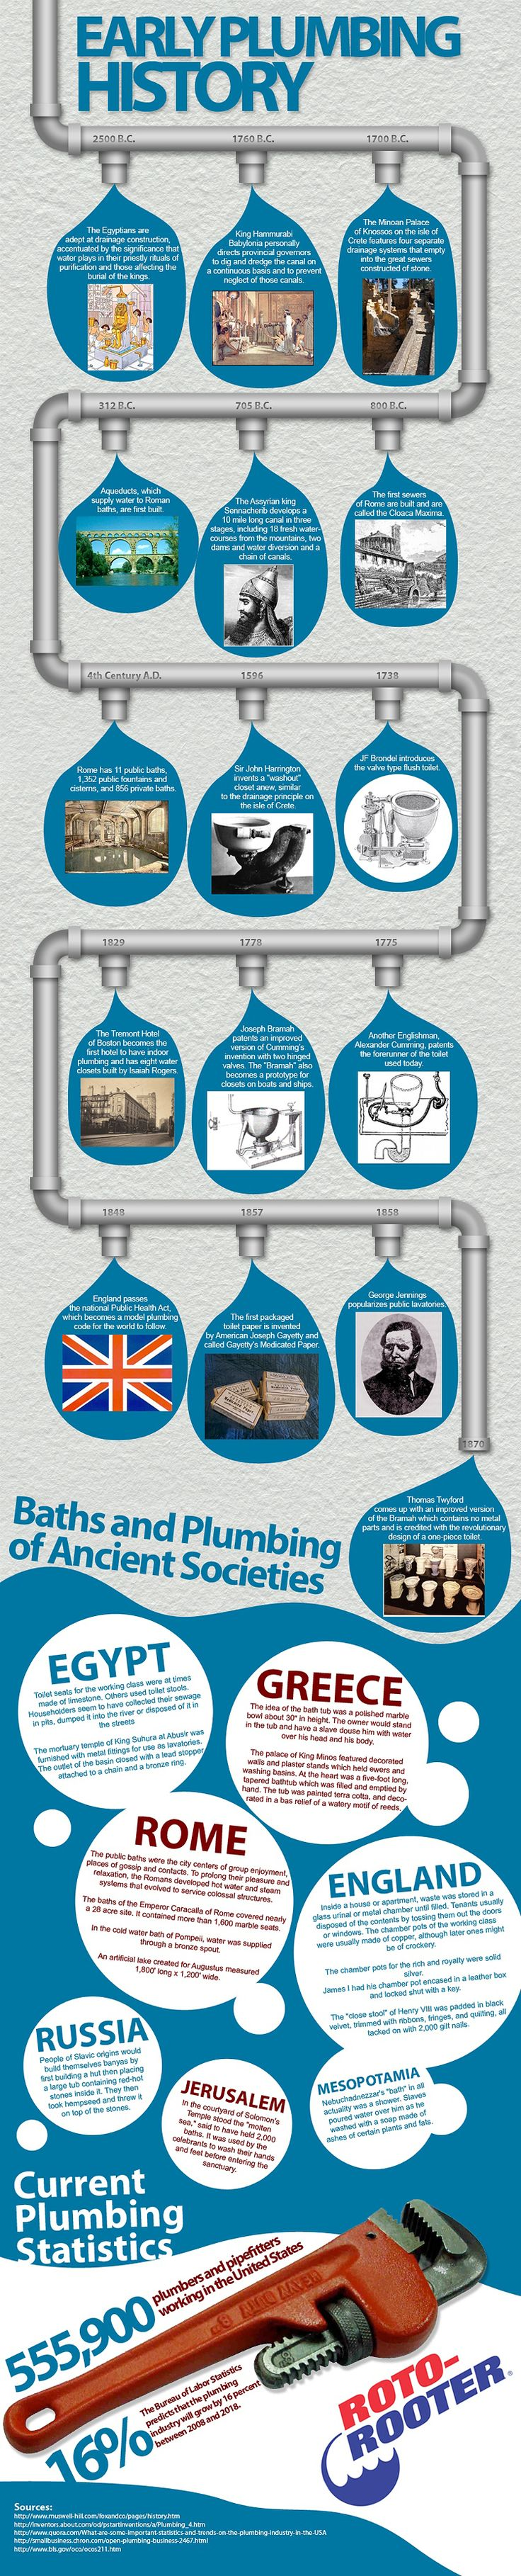 """Our """"Infographic"""" boards are more specific - so we thought we'd throw this into """"Interesting Pictures""""    Check out the very bottom for an awesome tidbit - the predicted growth of the plumbing industry! #Plumbing"""